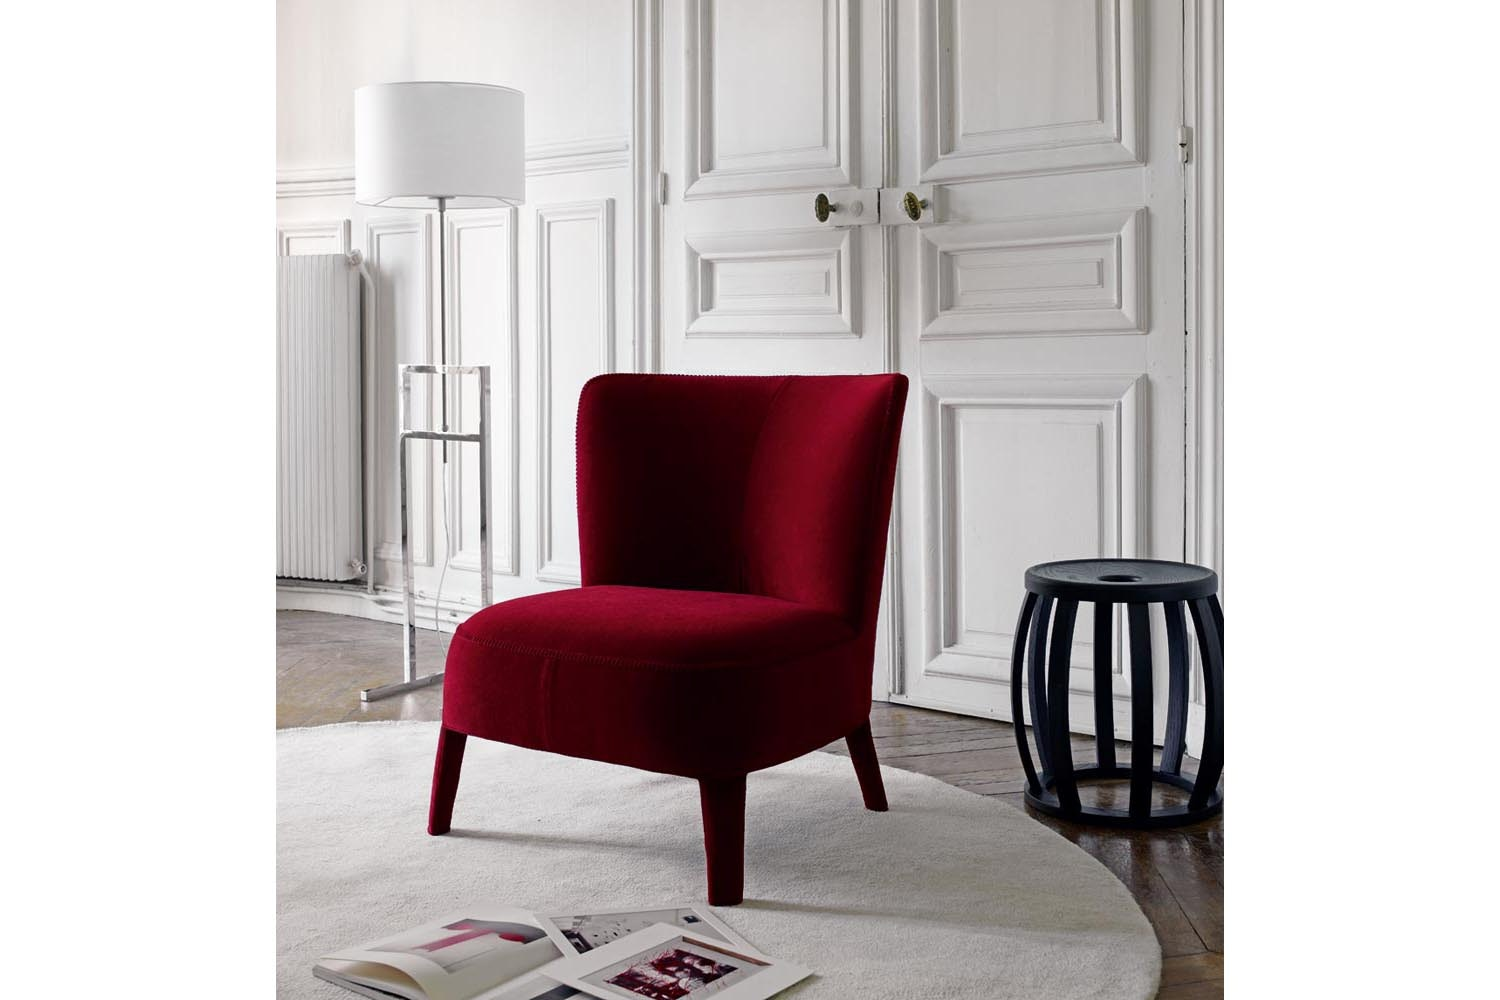 Febo Armchair with High Back by Antonio Citterio for Maxalto